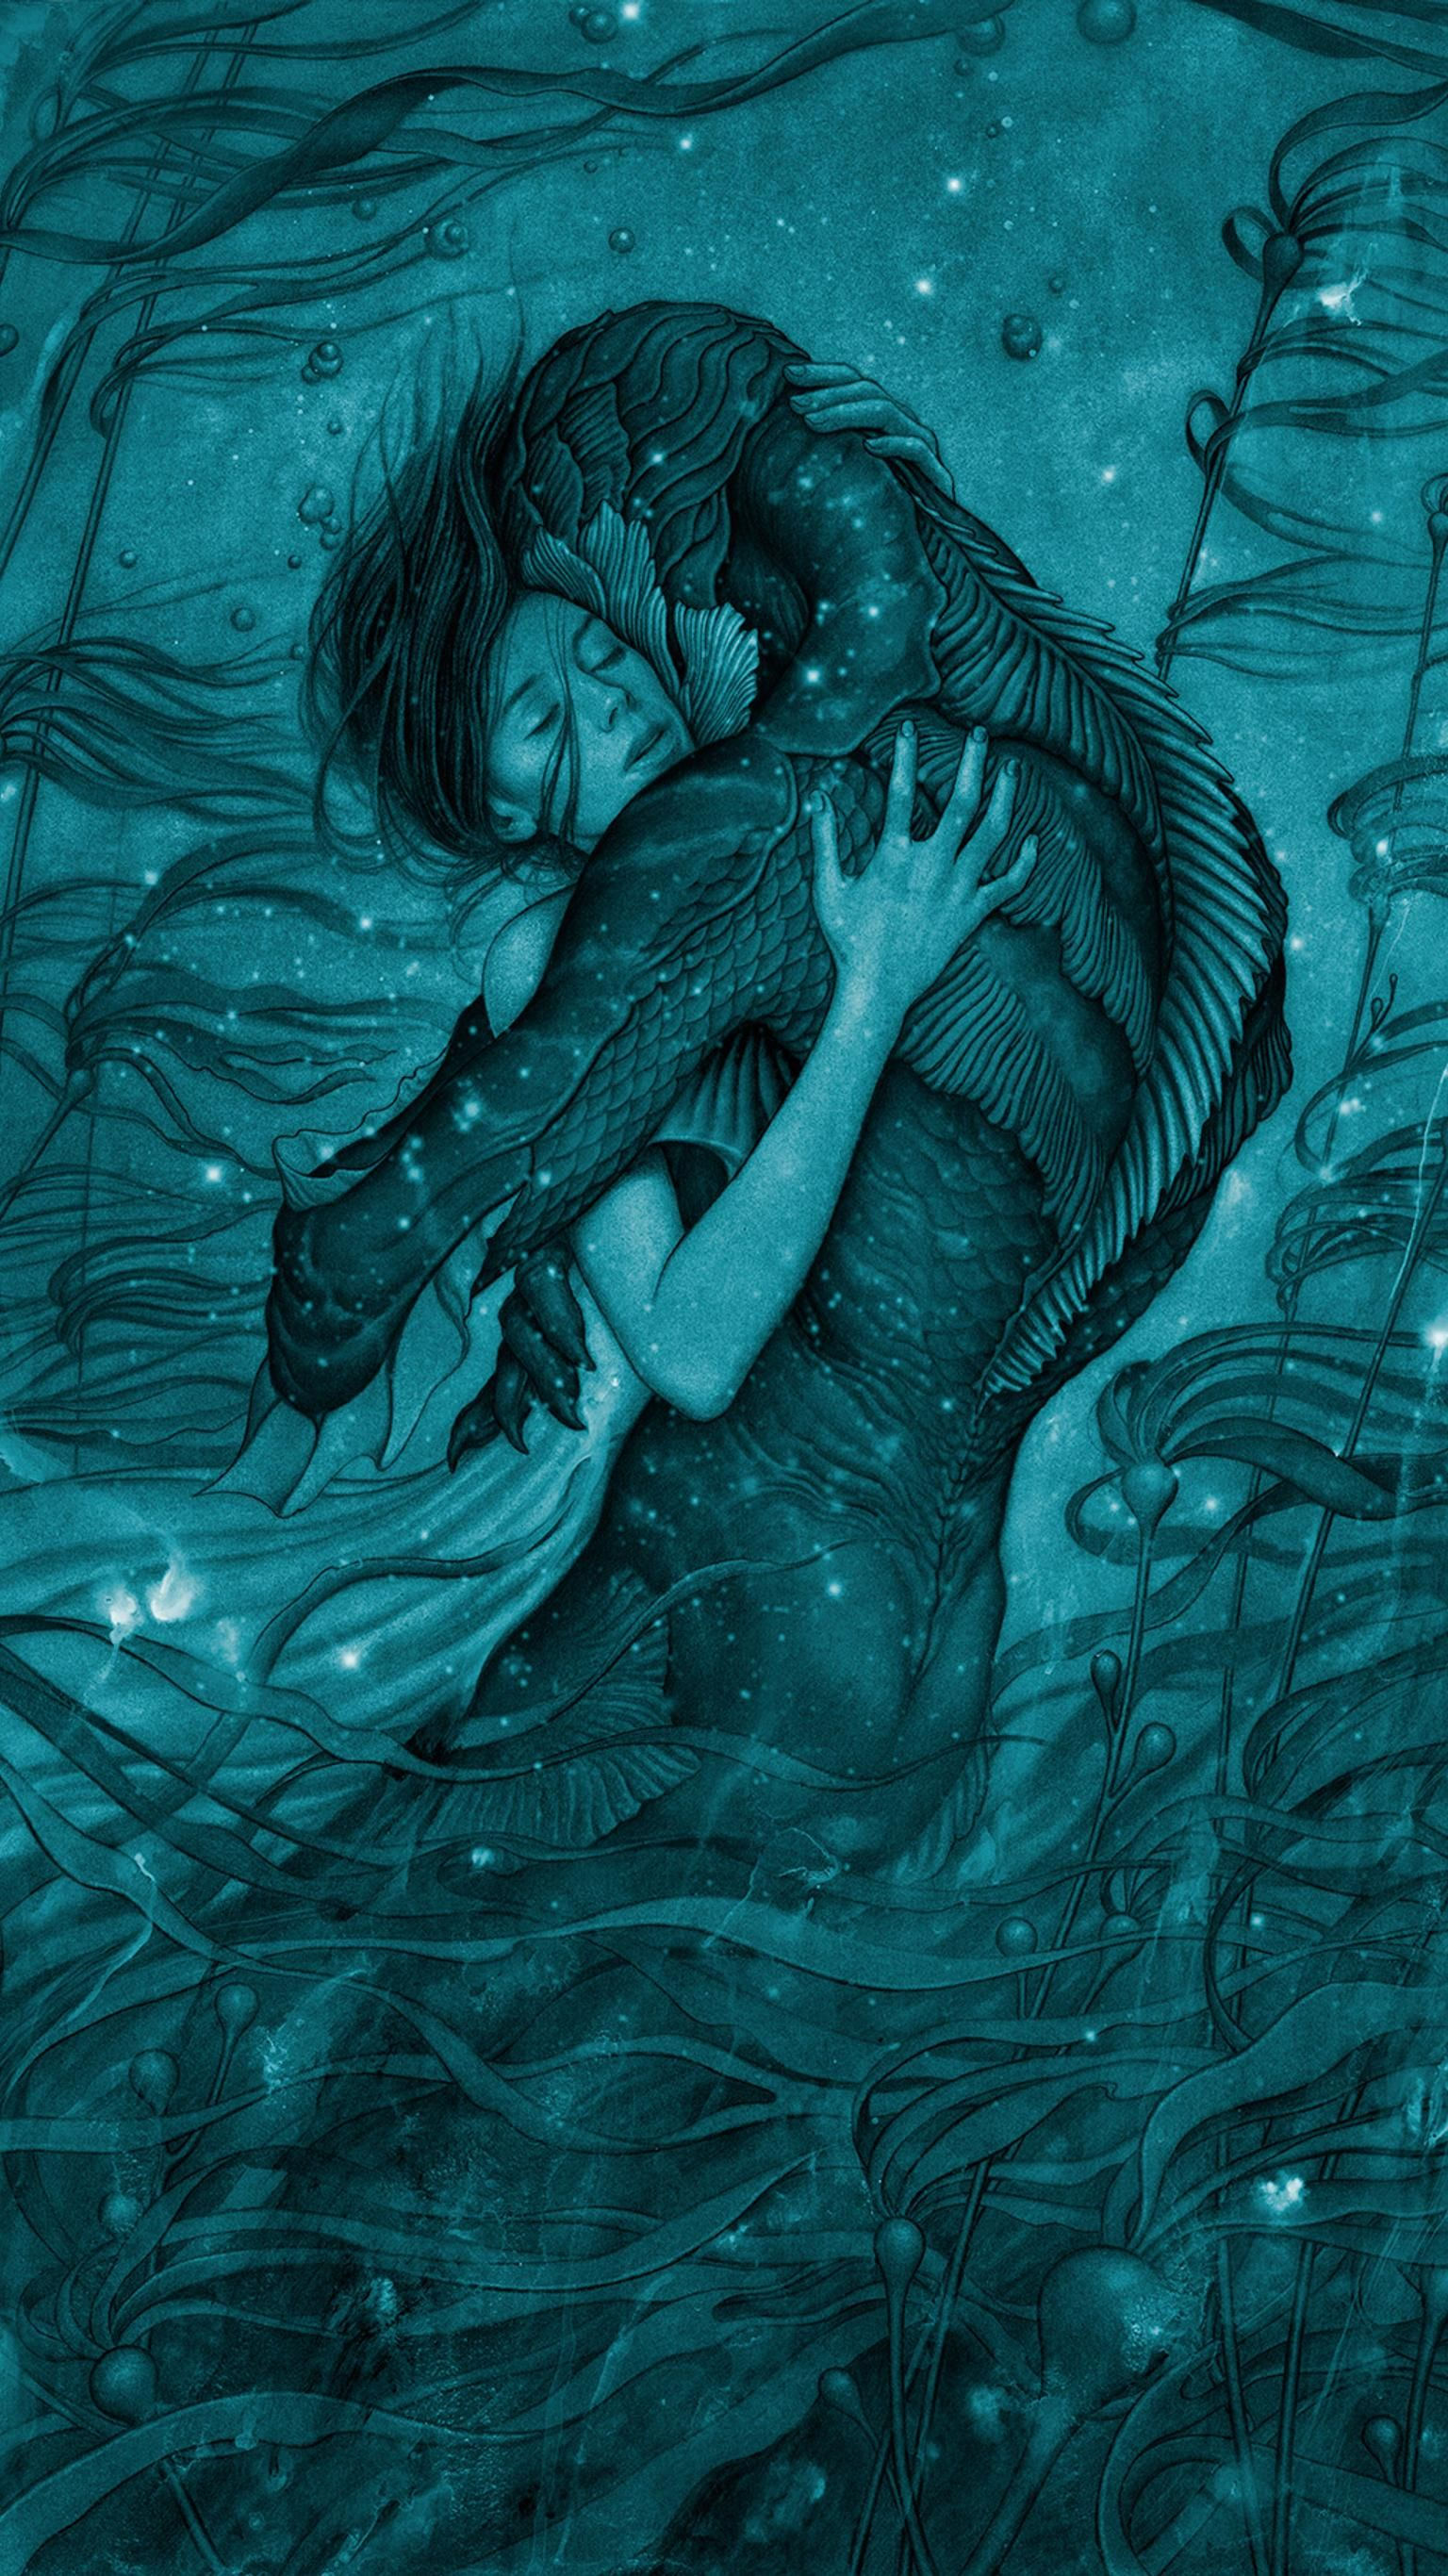 Moviemania Textless High Resolution Movie Wallpapers The Shape Of Water Water Art Water Poster